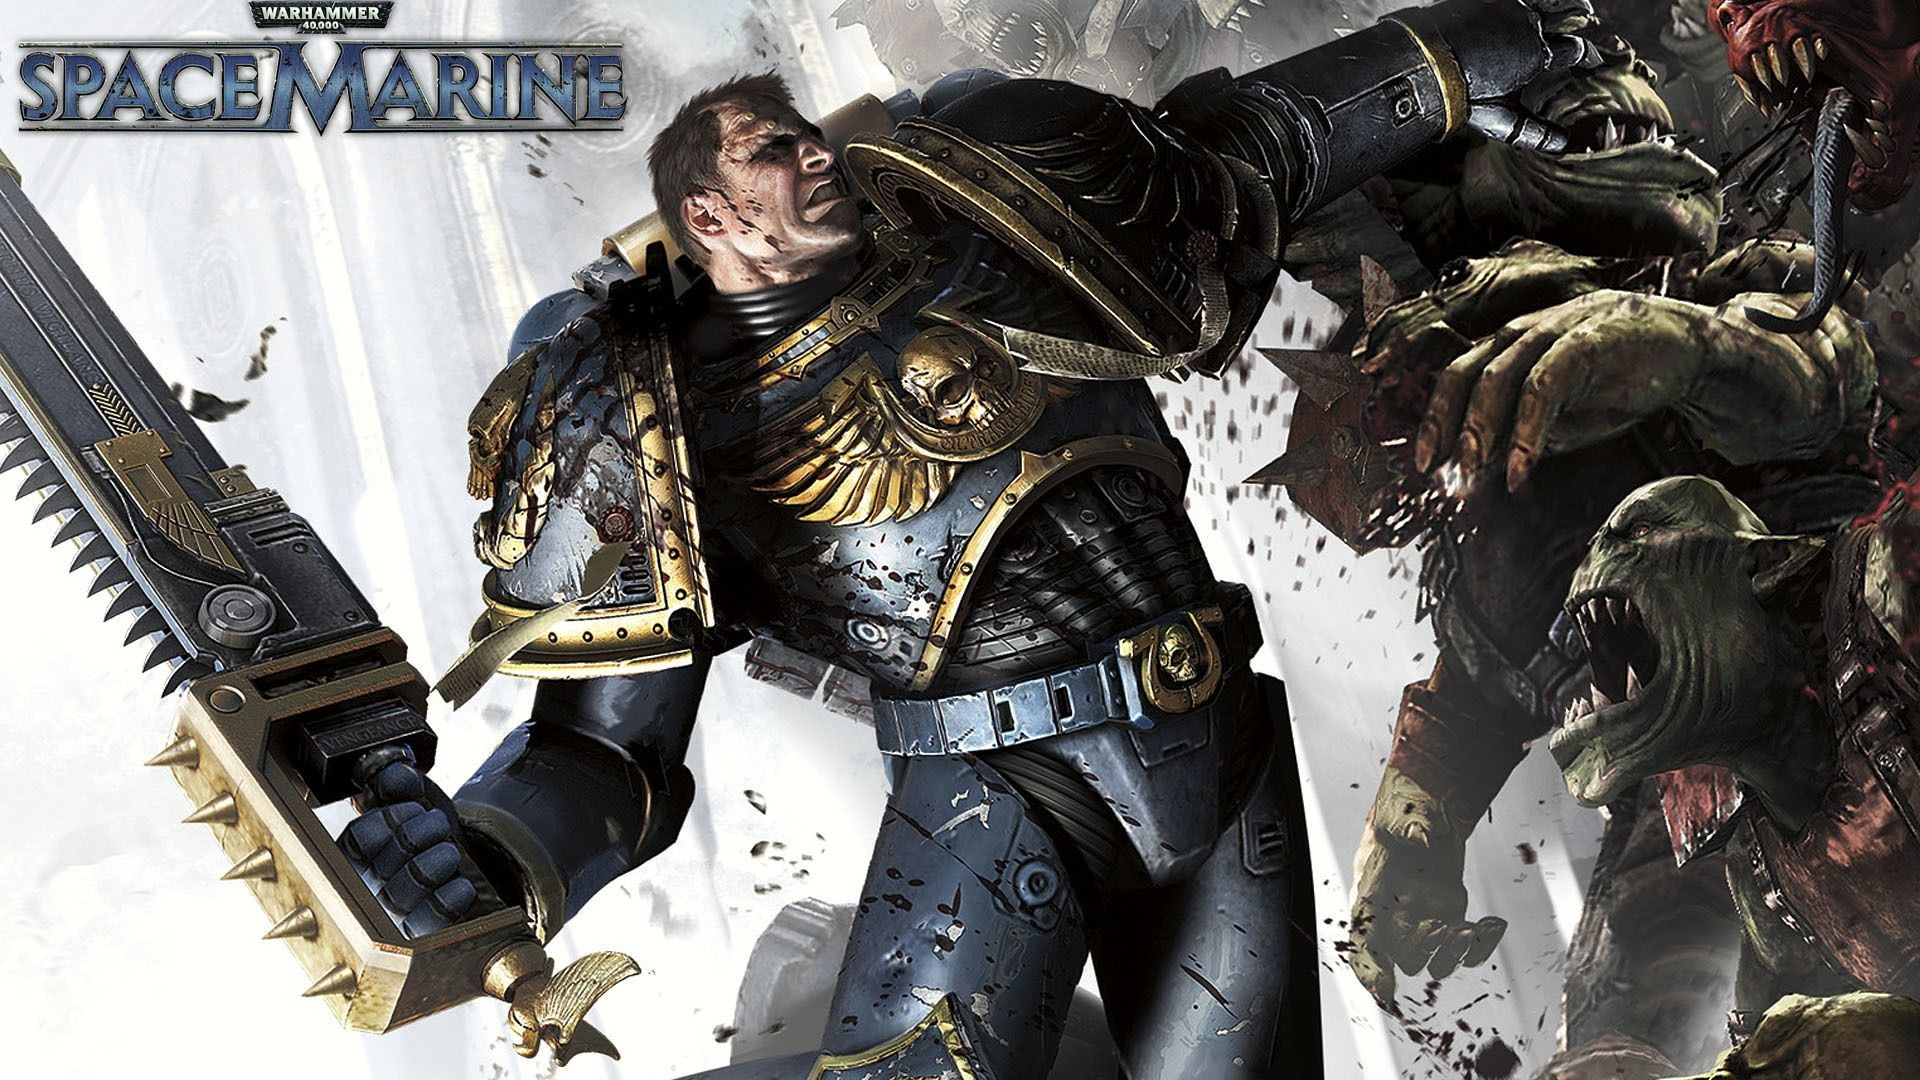 chainsword imperium orks space_marine(game) space_marines ultra-vs-orks  ultramarines wallpaper Warhammer 40k …